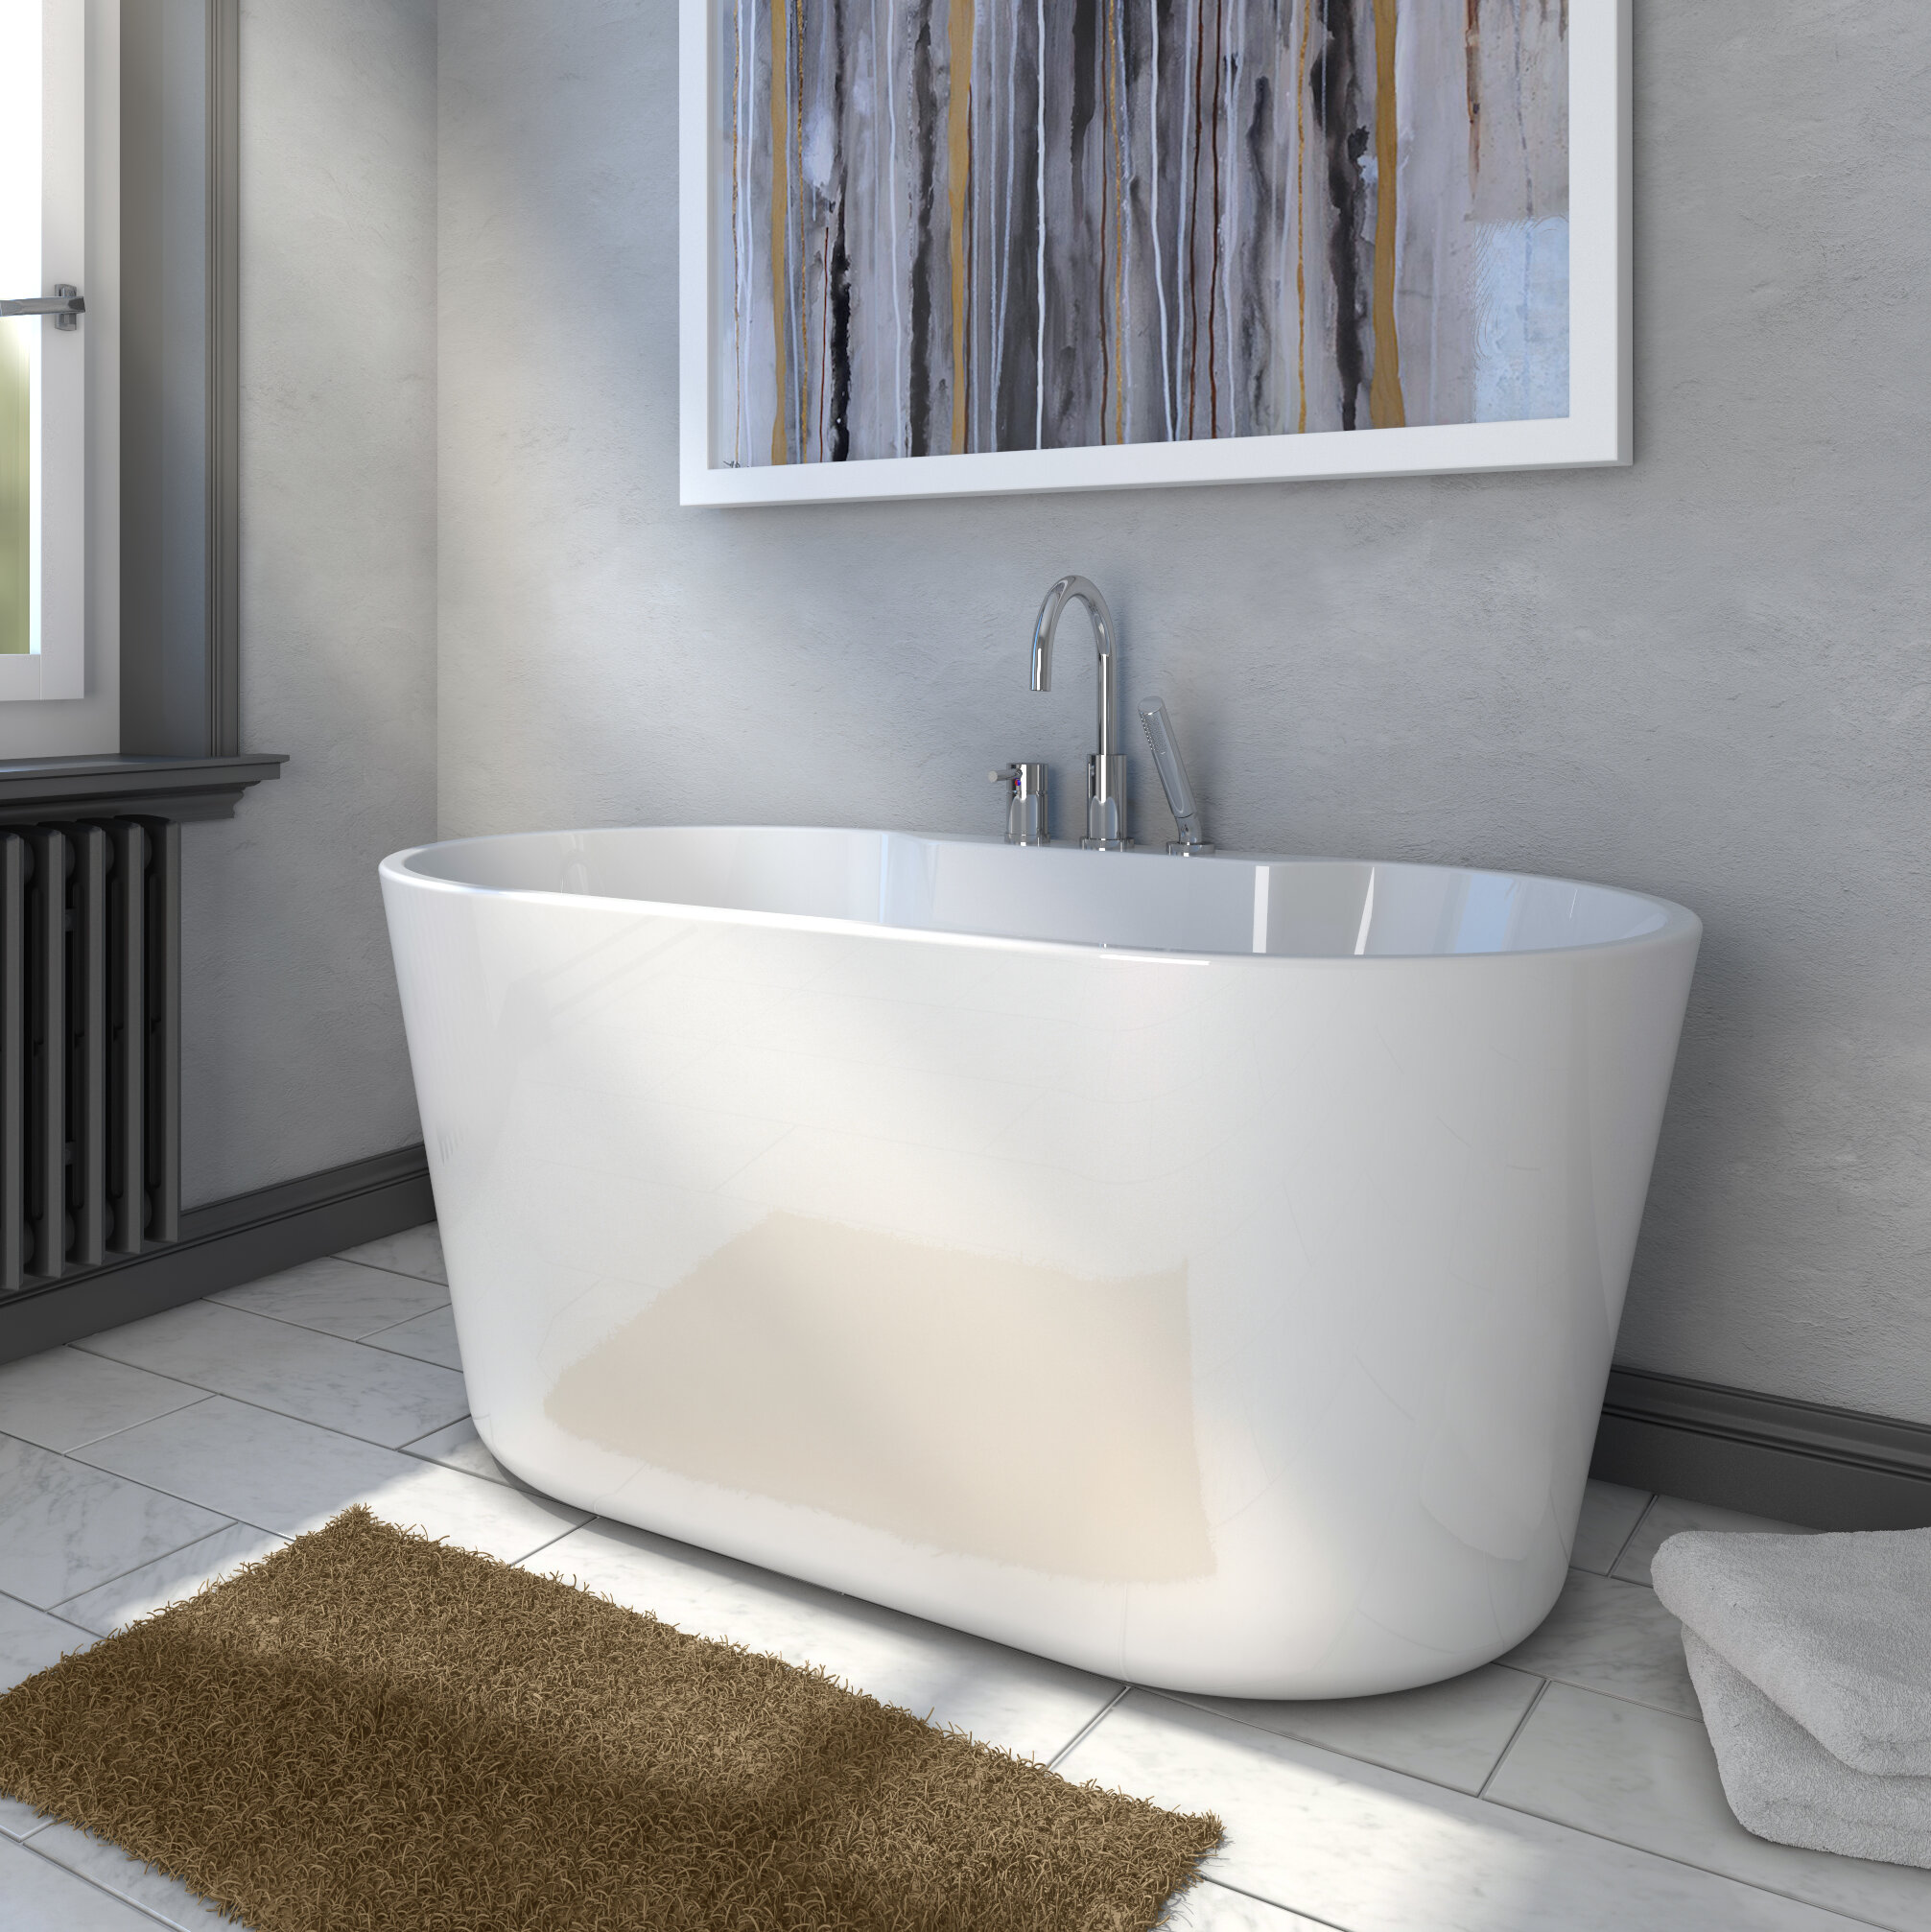 A E Bath And Shower 56 X 31 Freestanding Soaking Bathtub Reviews